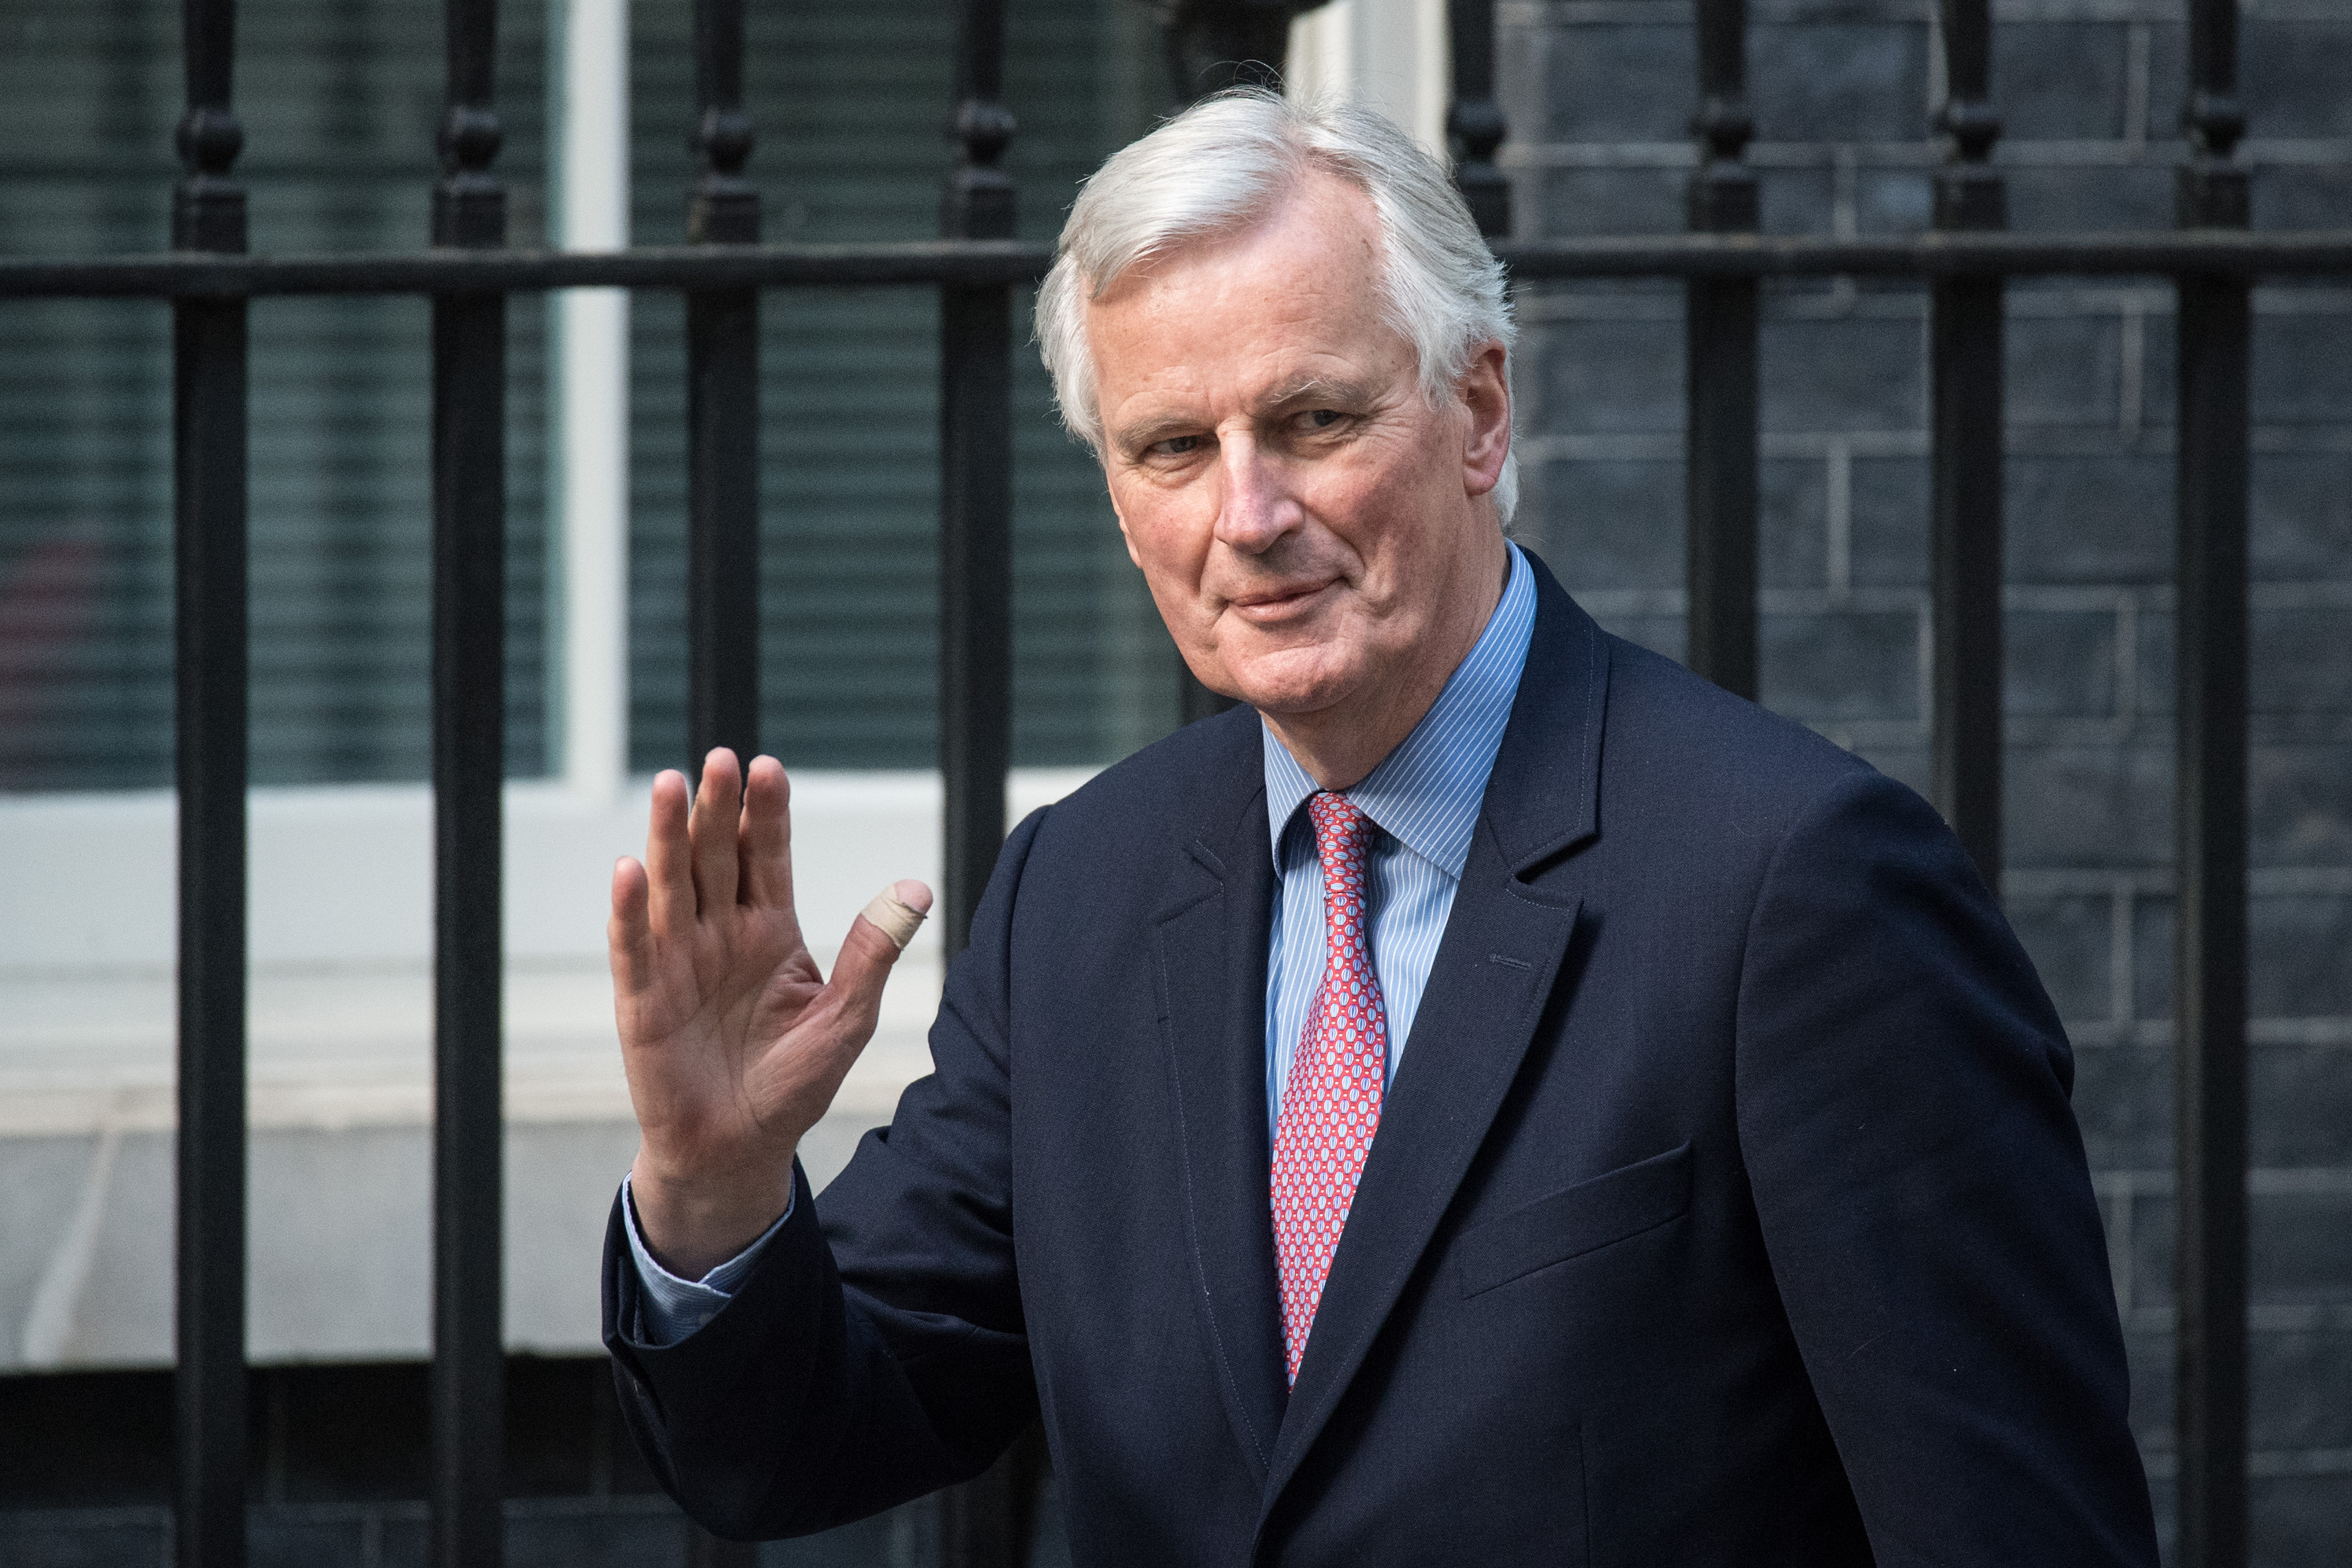 LONDON, ENGLAND - APRIL 26: European Union's chief Brexit negotiator, Michel Barnier, arrives with European Commission president, Jean-Claude Juncker, to meet Britain's Prime Minister, Theresa May on April 26, 2017 in Downing Street, London, England. Prime Minister May is to hold her first major talks with E.U leaders since calling a general election in a bid to strengthen her position in forthcoming Brexit negotiations. (Photo by Carl Court/Getty Images)